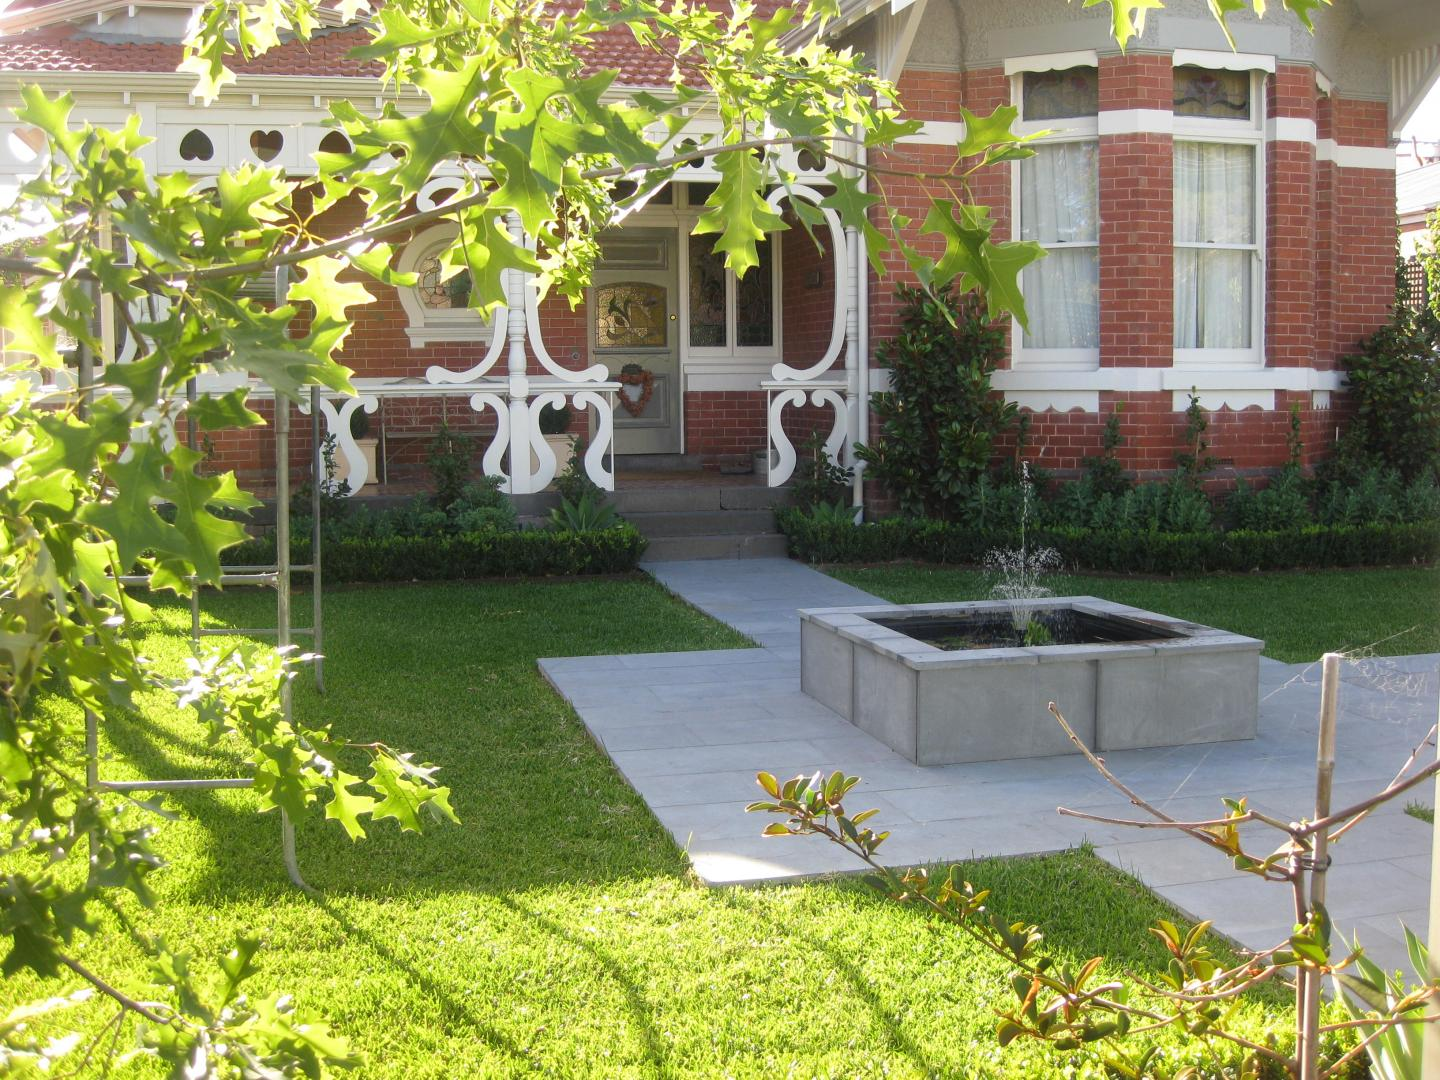 Landscape Designer Brighton East Mornington Peninsula Melbourne